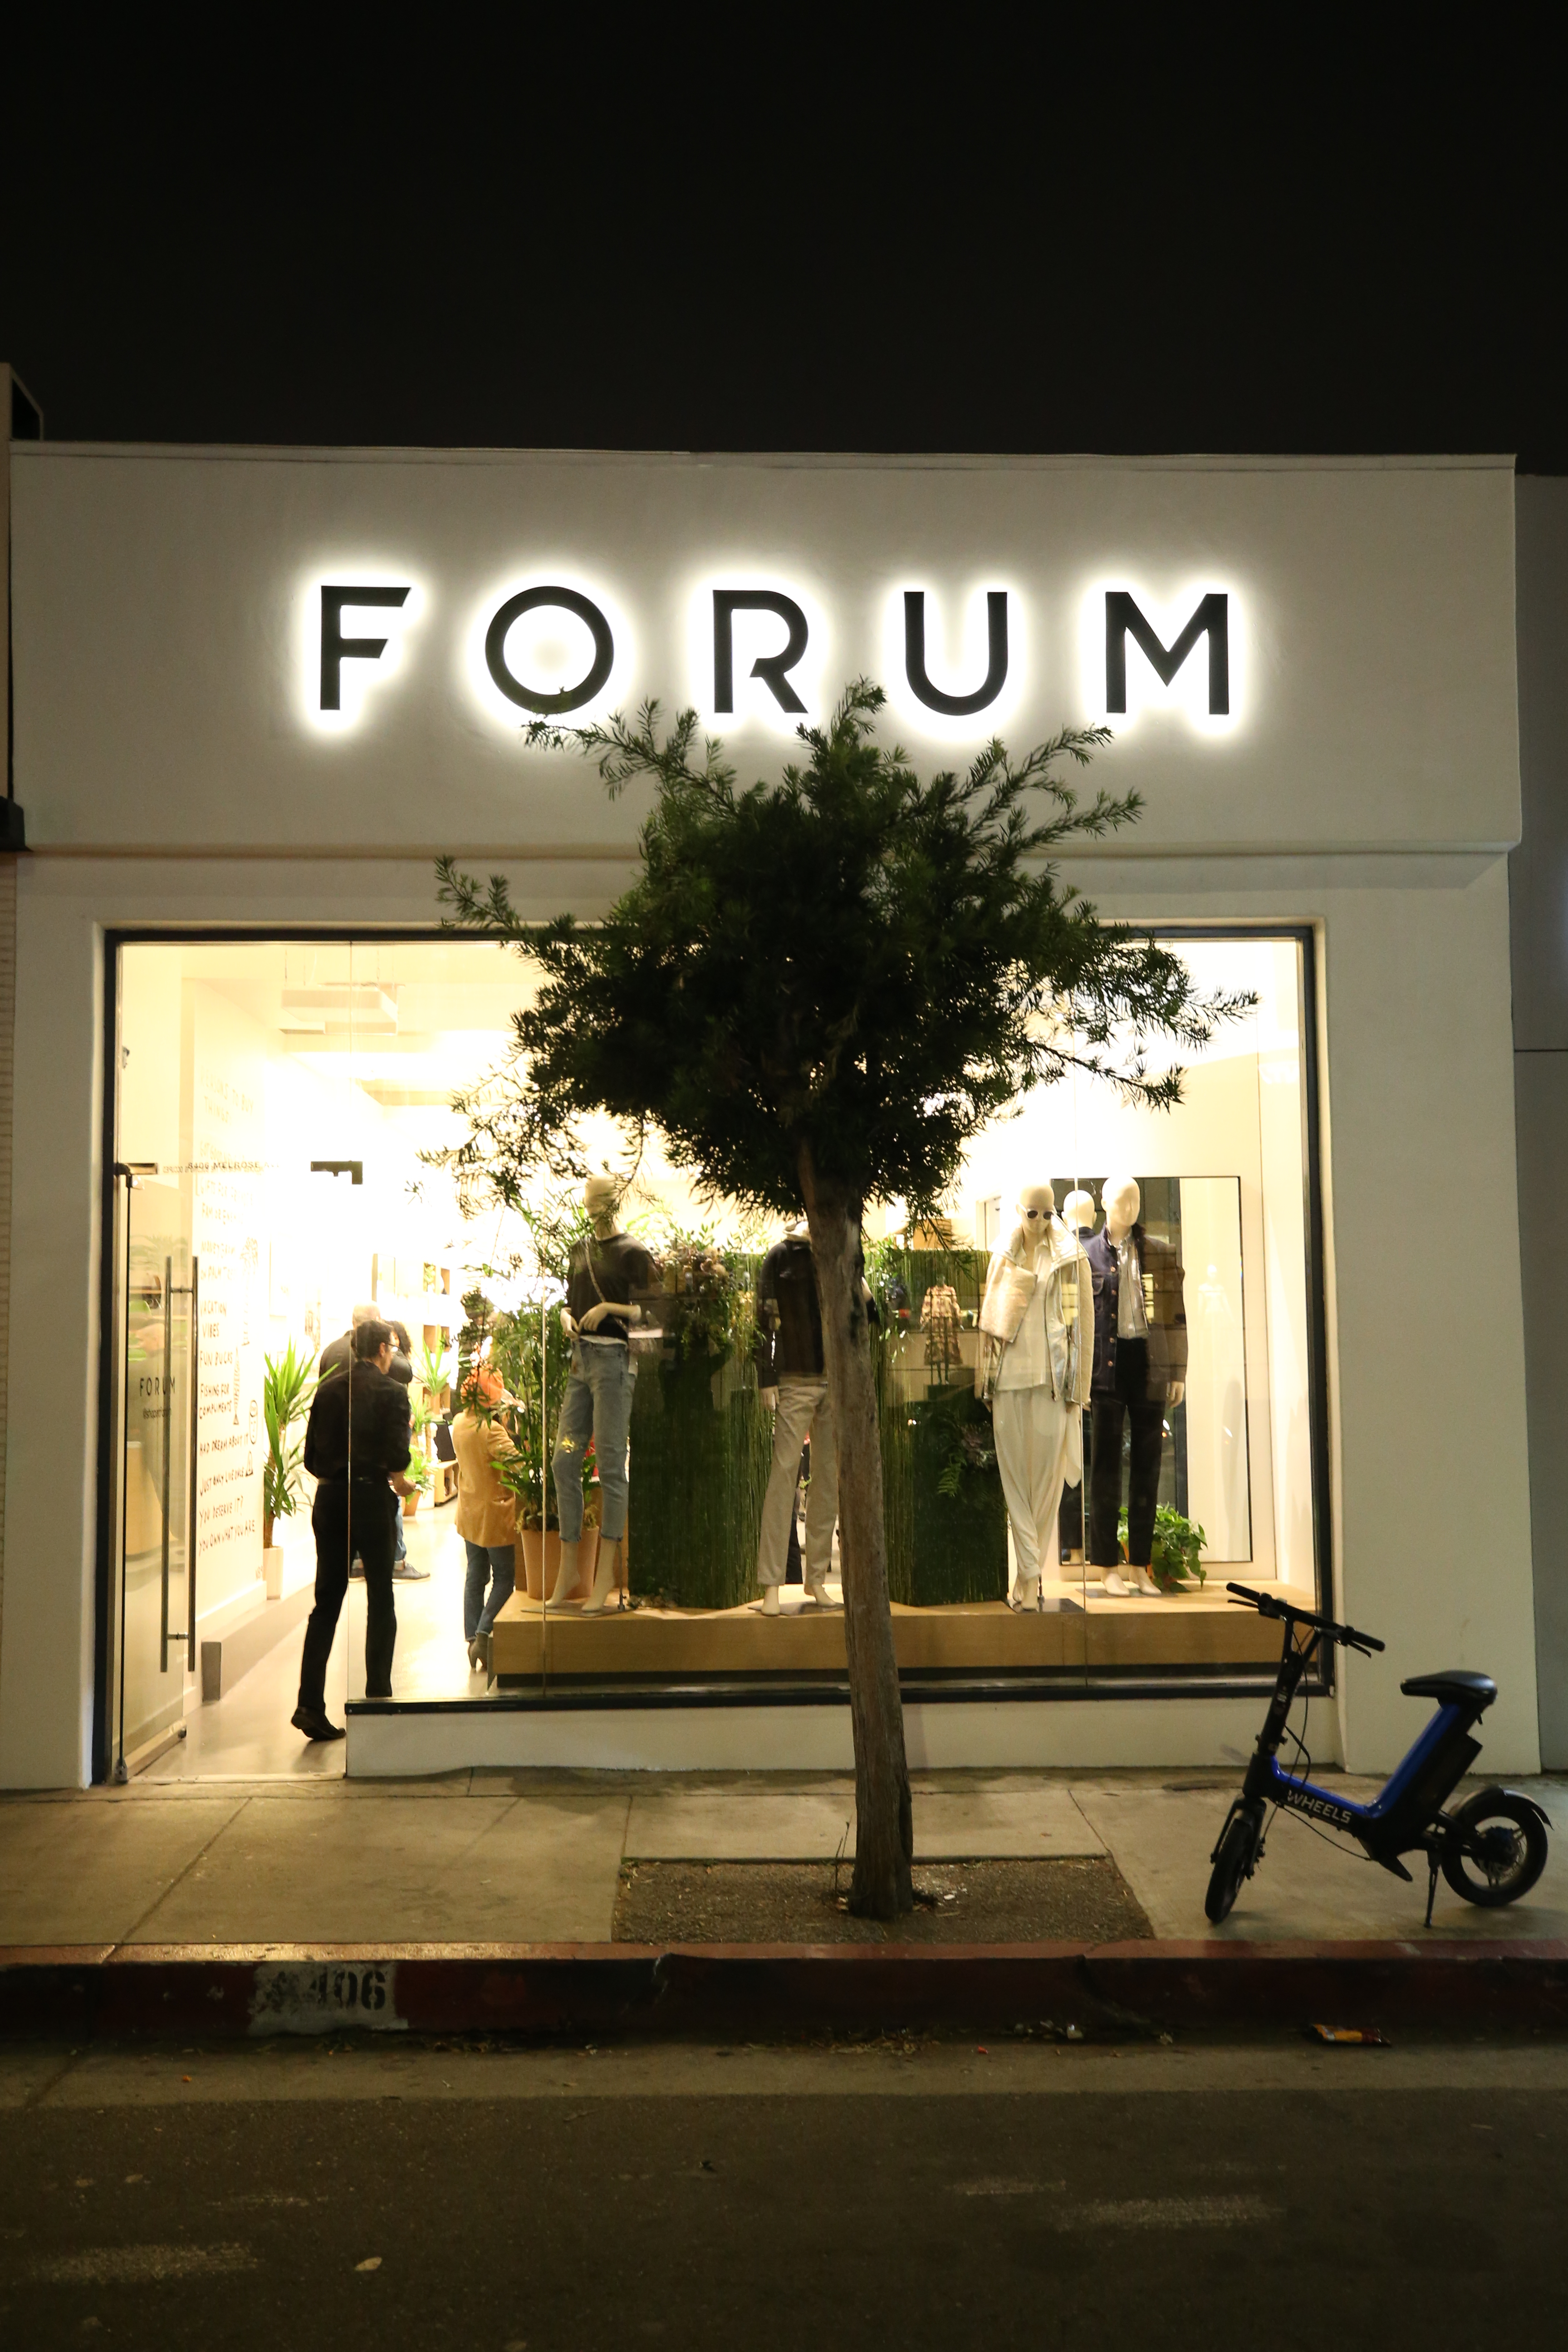 WEST HOLLYWOOD, CALIFORNIA - NOVEMBER 13: Forum West Hollywood Grand Opening Event at Forum West Hollywood on November 13, 2019 in West Hollywood, California. (Photo by Phillip Faraone/Getty Images for Forum West Hollywood)